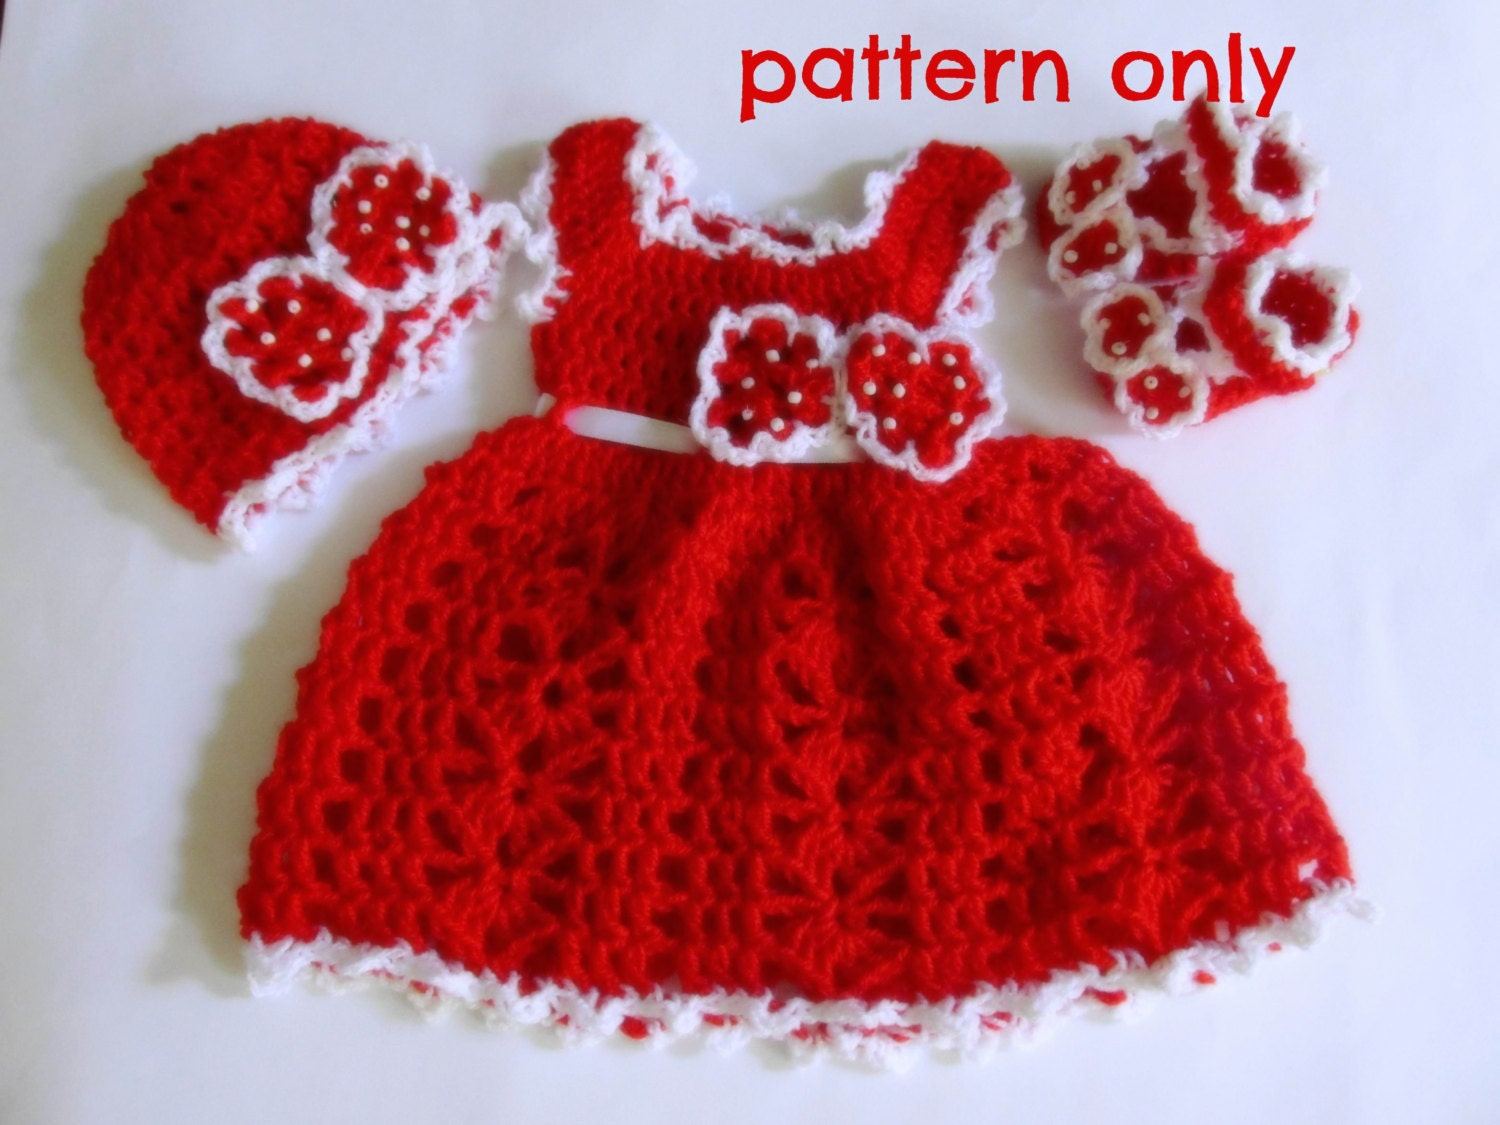 Crochet Baby Outfit Pattern : Baby Dress Pattern Baby Crochet Pattern Baby Girl Dress